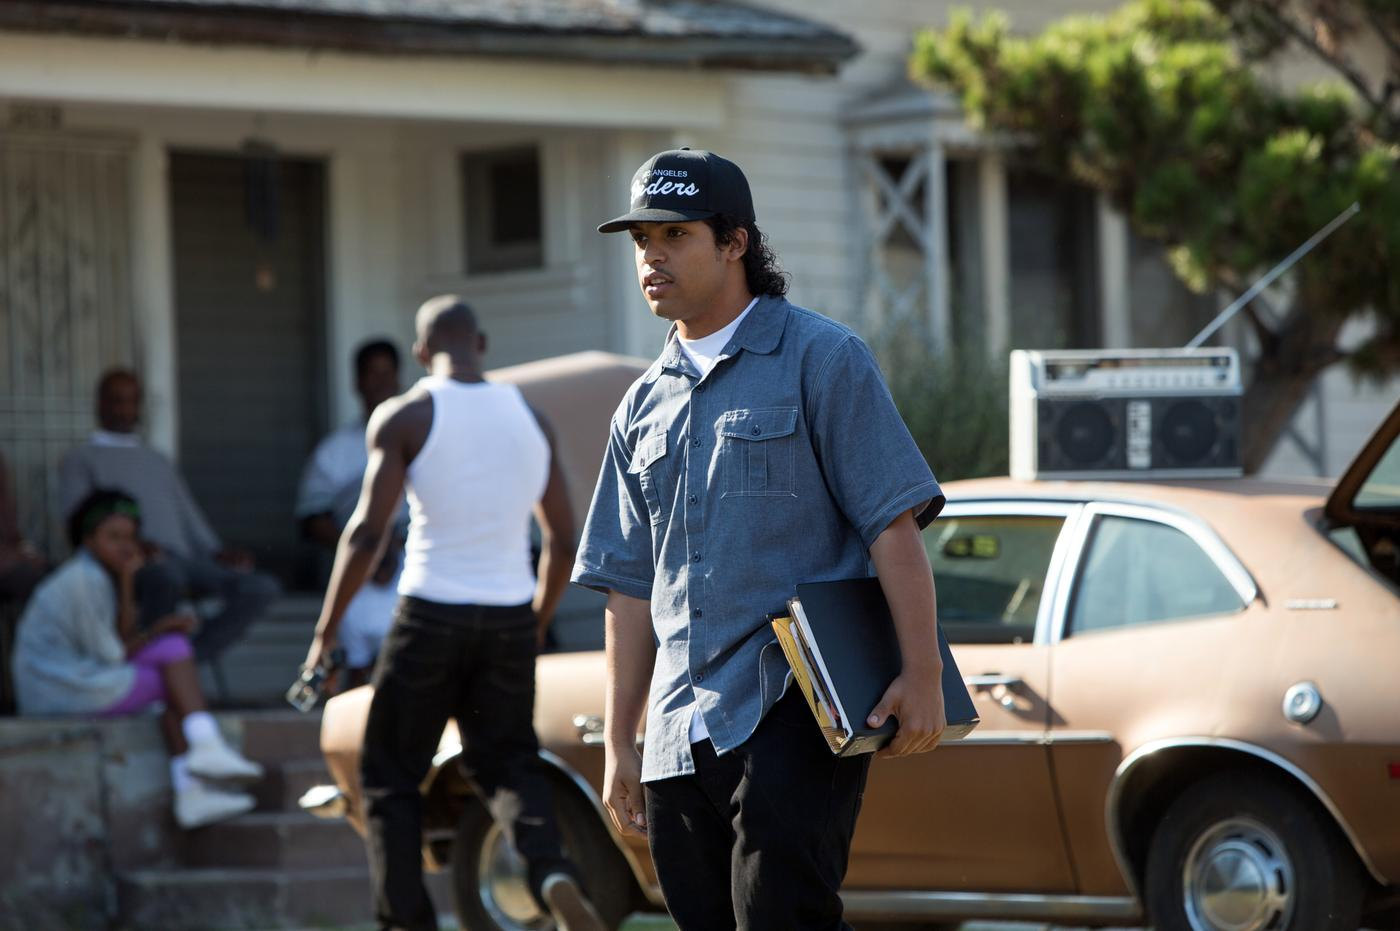 Straight Outta Compton tops American Pie 2 to become the biggest R-rated film in August box office records